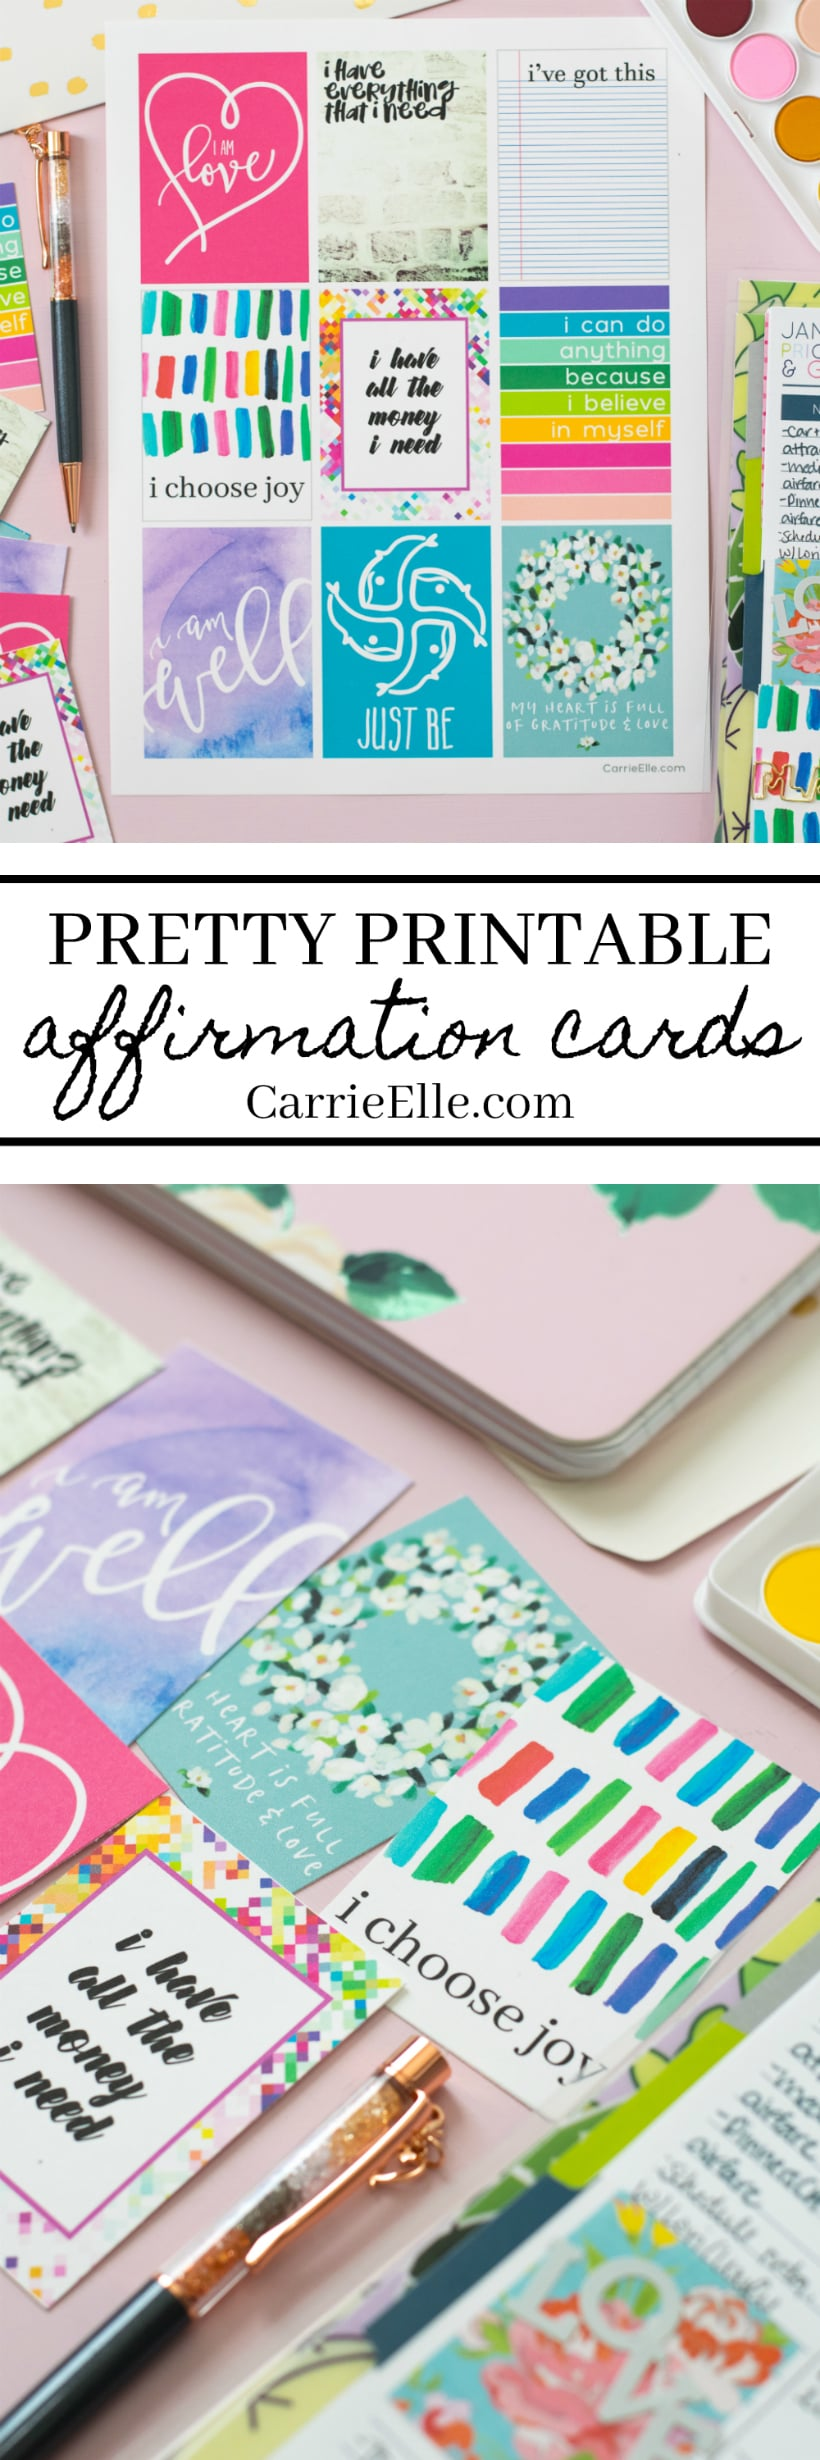 photo about Affirmation Cards Printable named Beautiful Printable Confirmation Playing cards - Carrie Elle